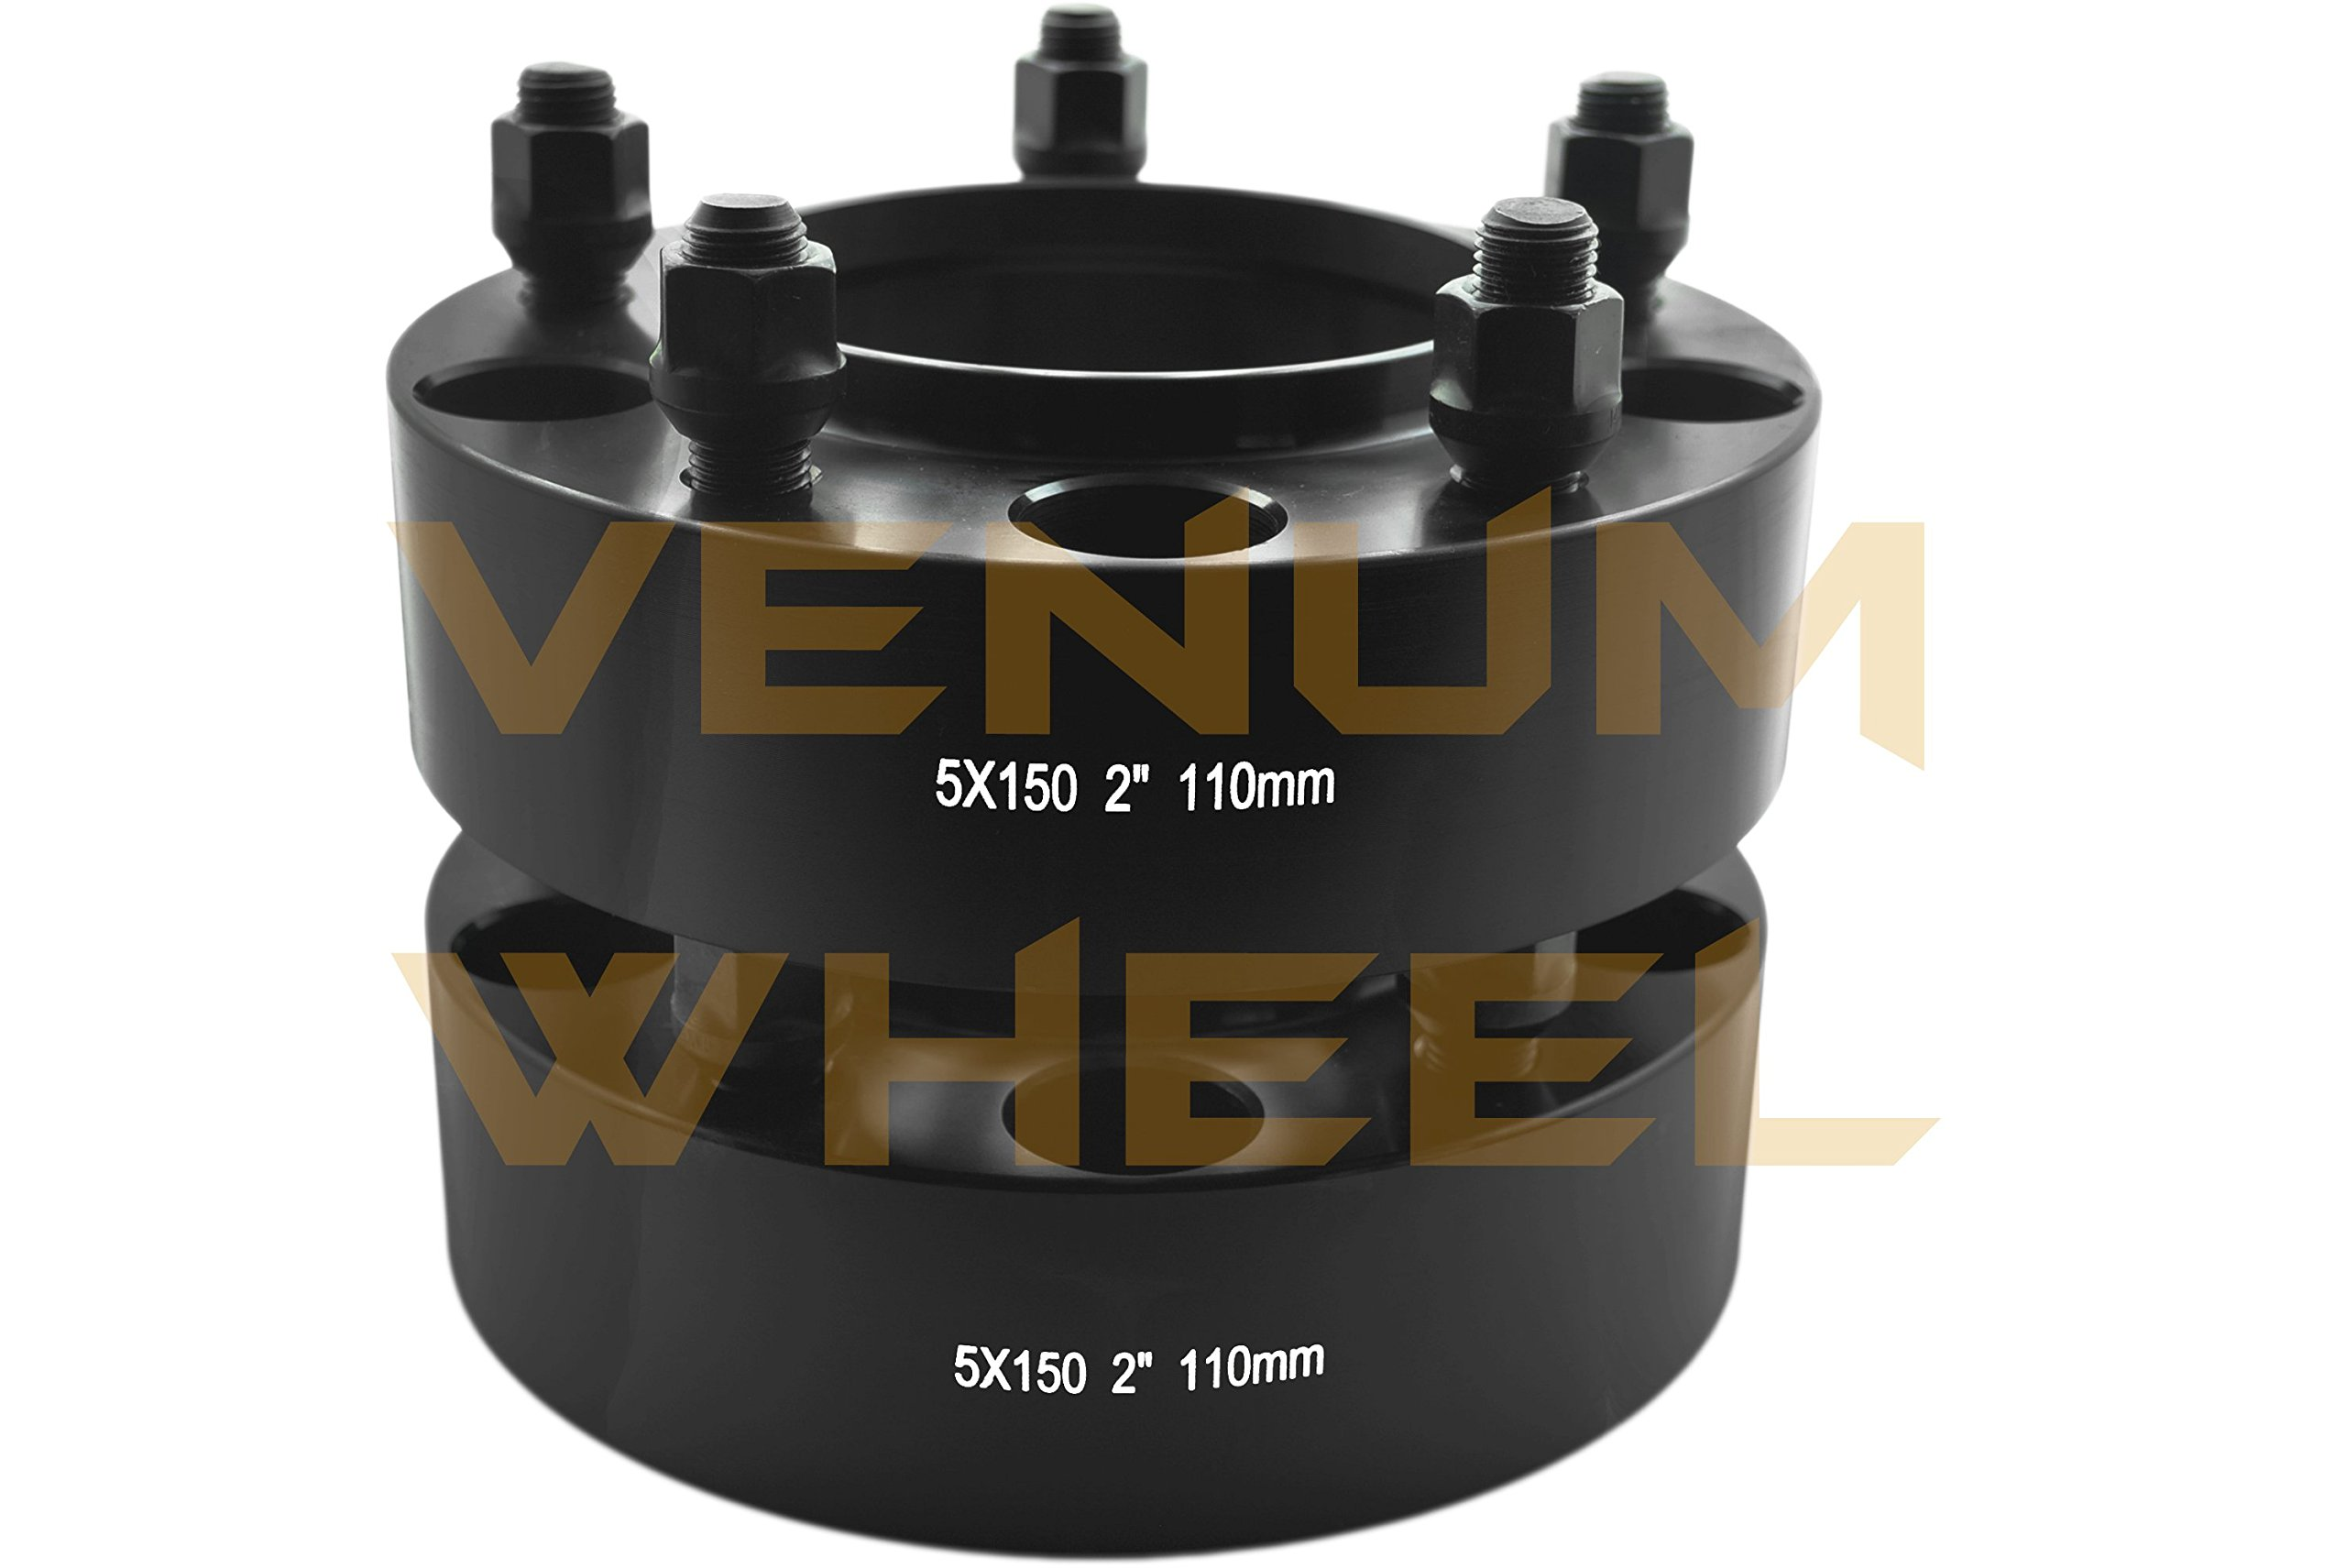 4 Pc 5x150 to 5x150 2'' Thick Black Hubcentric Wheel Spacers Adapter for Toyota Tundra 2007-2016 Hub Bore 110mm 14x1.5 Studs 6061 T6 Billet Aluminum (07-) Black by Venum wheel accessories (Image #3)